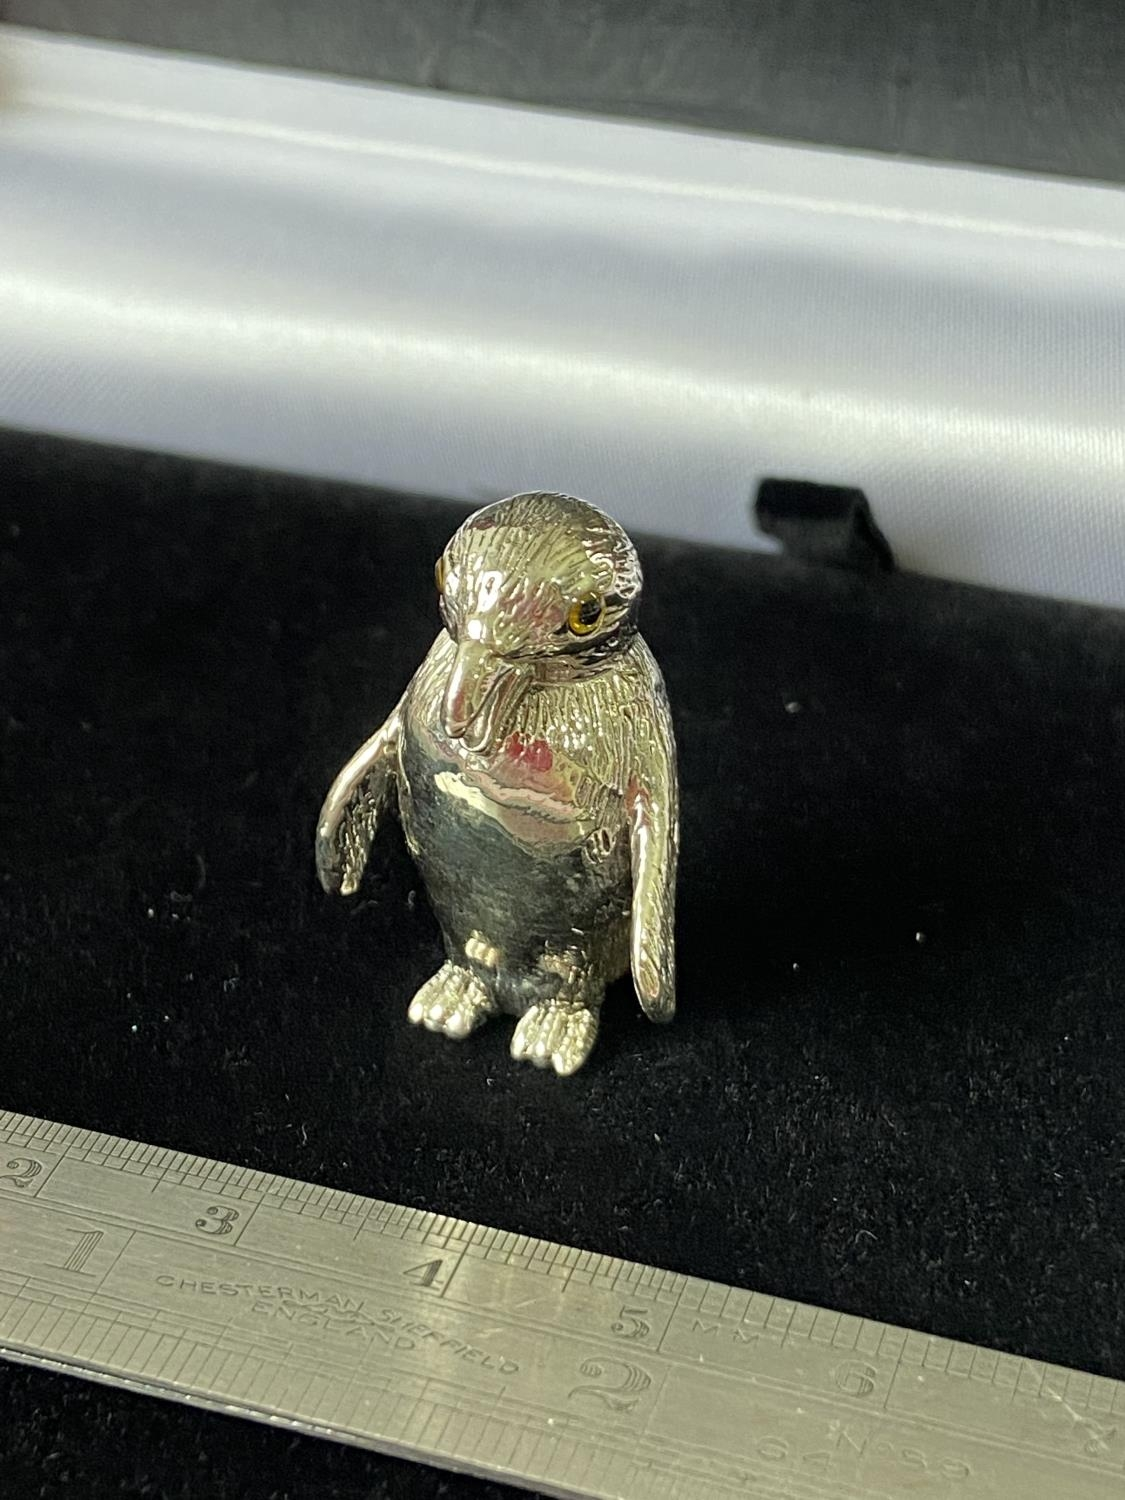 A Silver penguin pincushion with glass eyes. [2.9cm in height] - Image 2 of 6